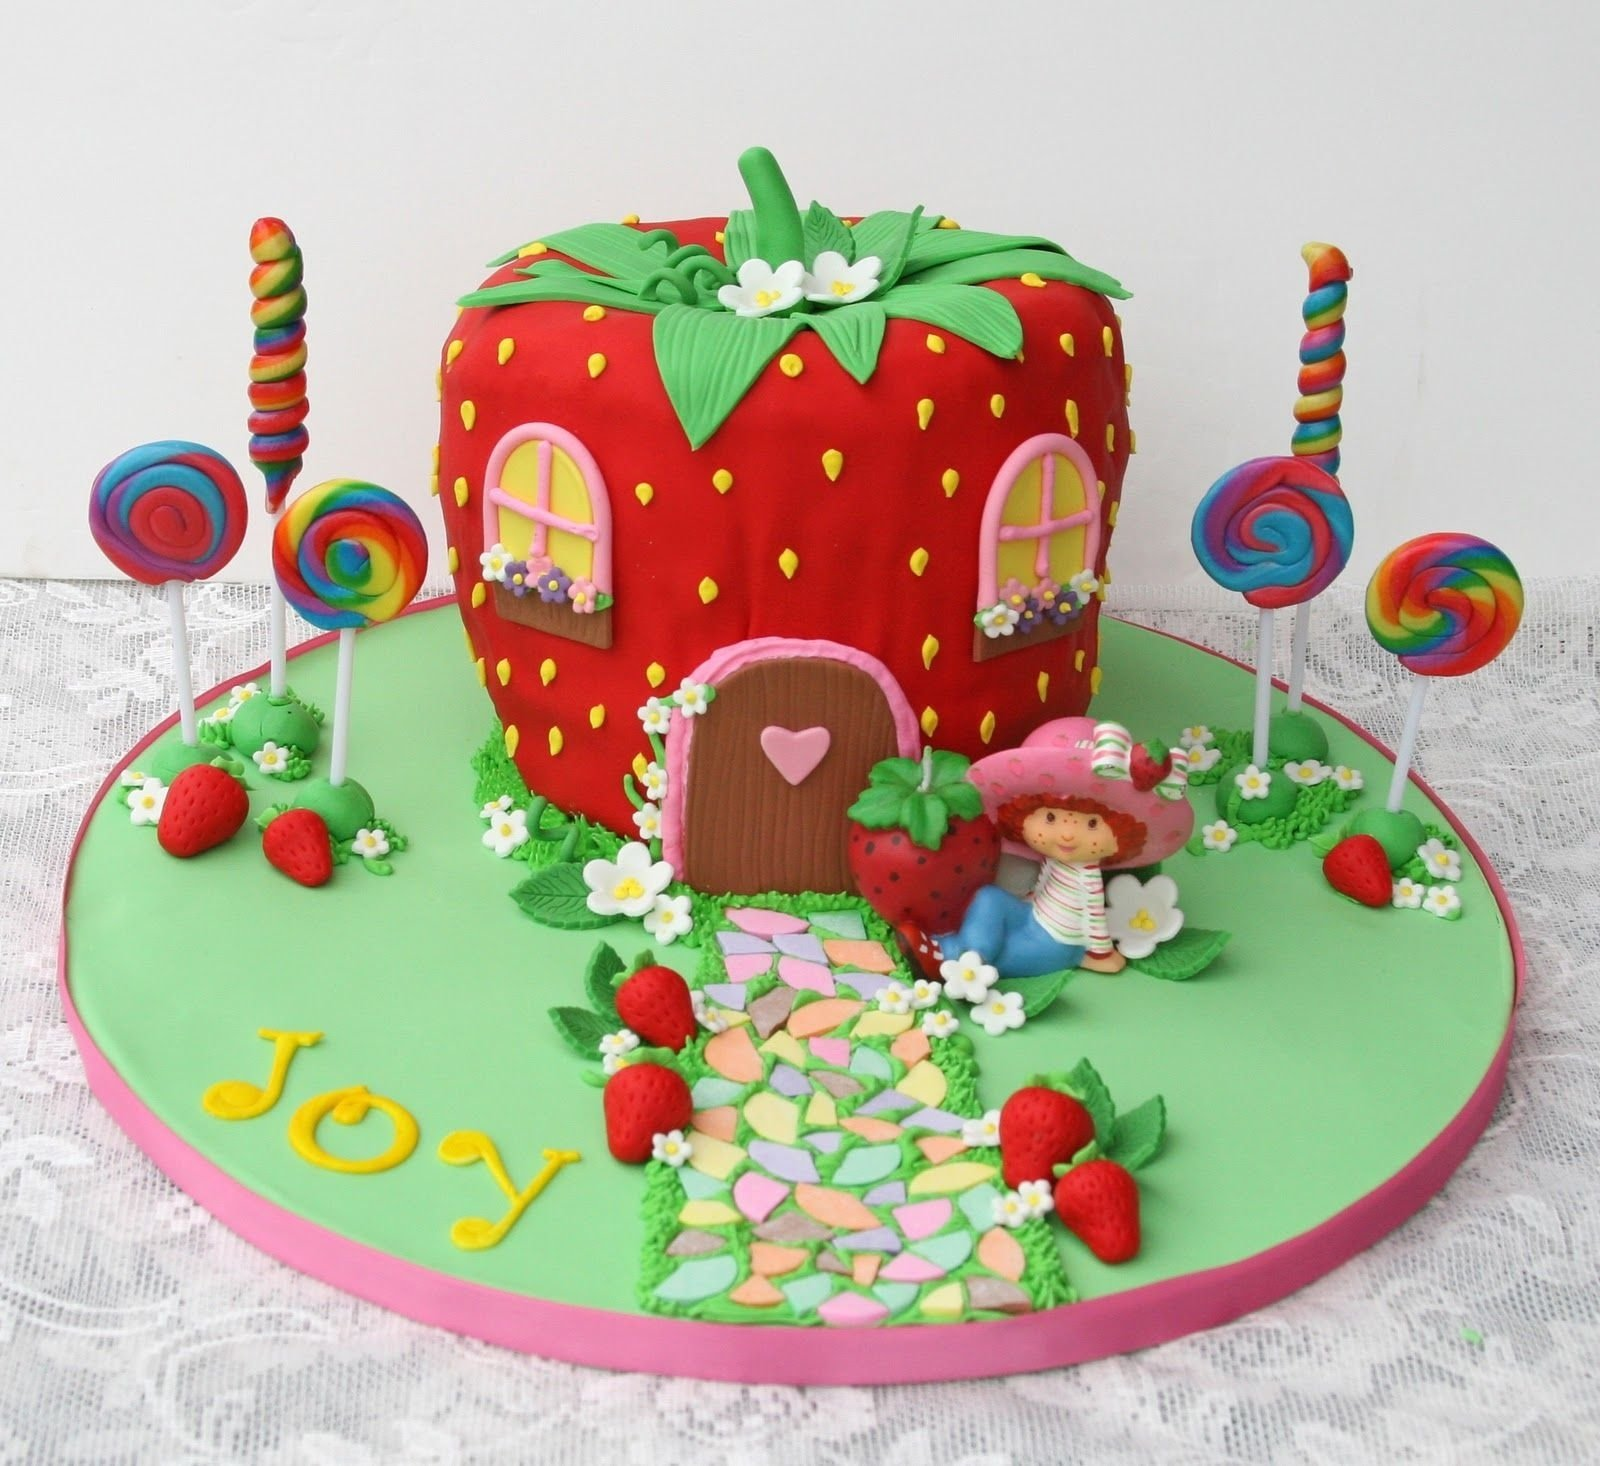 10 Attractive Strawberry Shortcake Birthday Cake Ideas how to throw an awesome strawberry shortcake party strawberry 2020